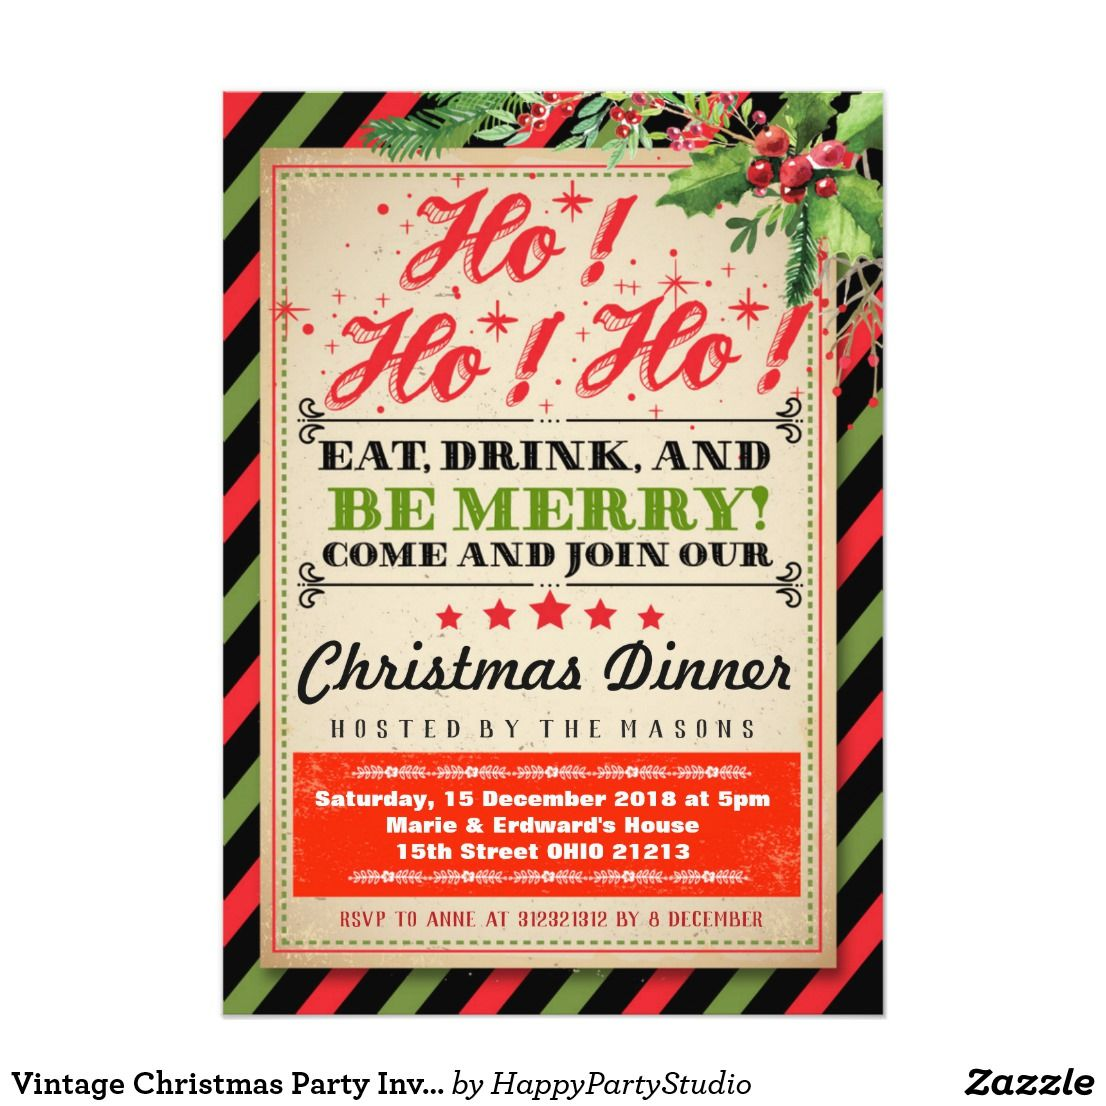 Vintage Christmas Party Invitation | Vintage christmas party